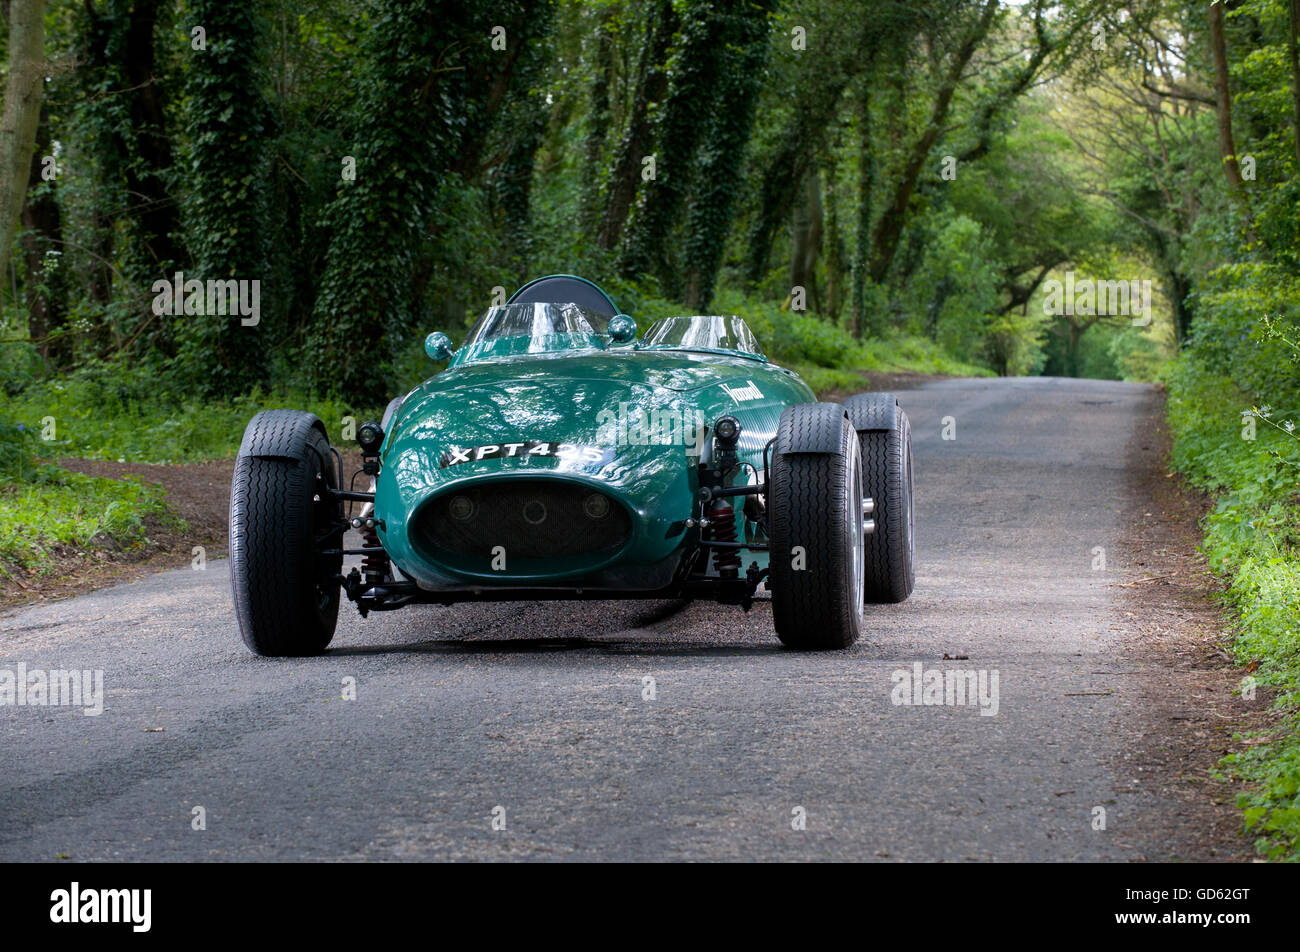 Vanwall Sports Car Unique 2 Seater Recreated Classic Fitted With A